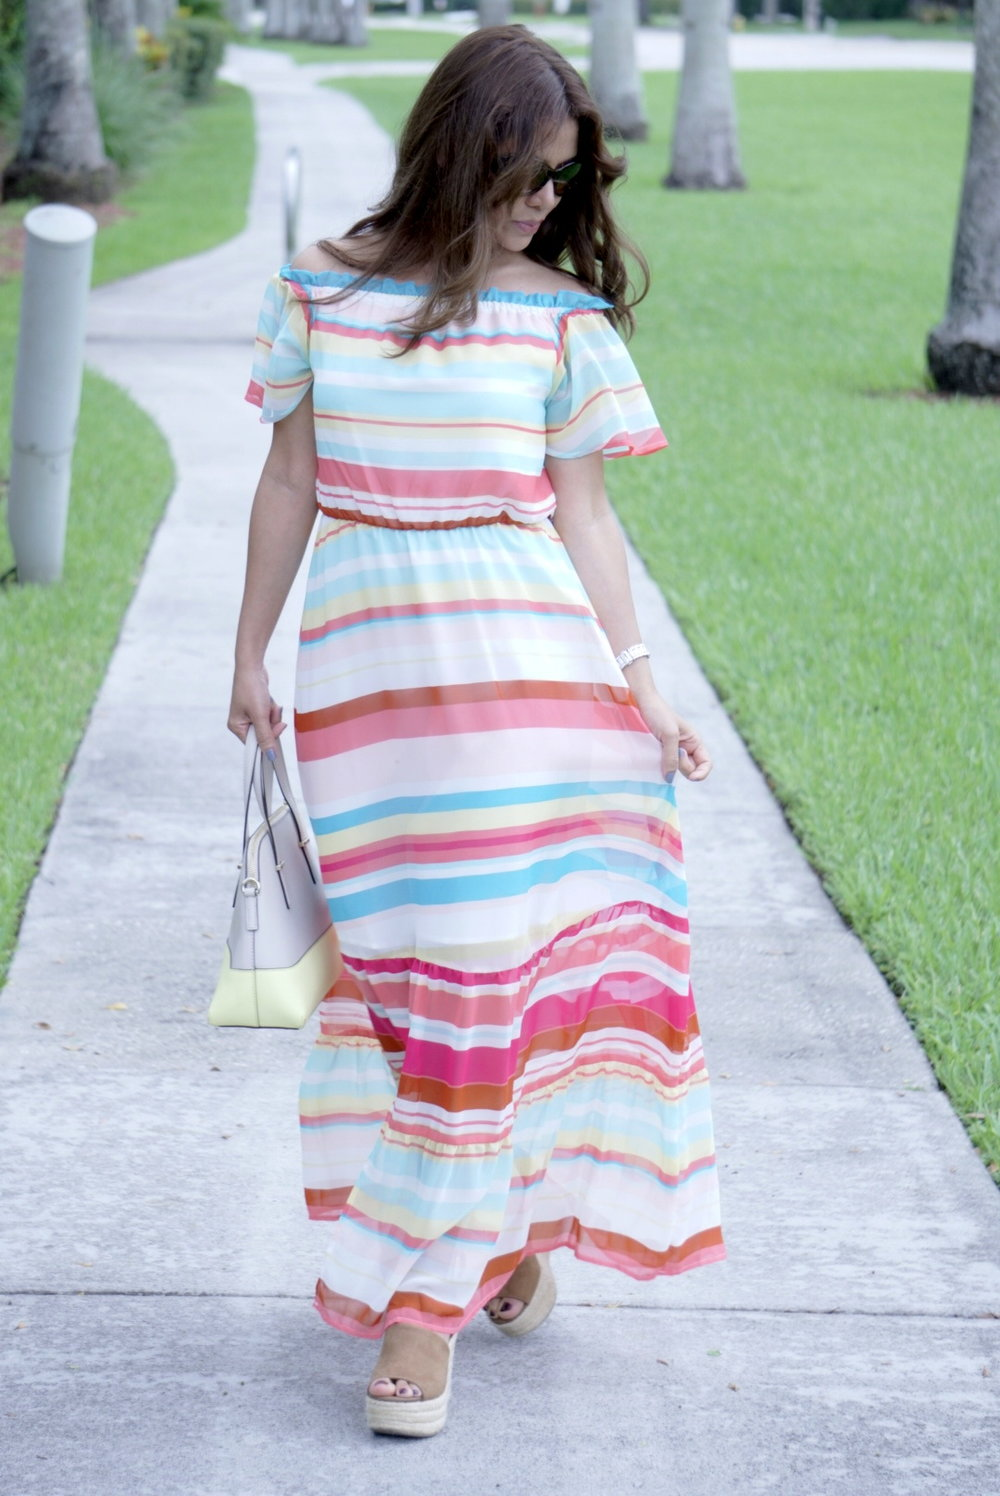 For a hot weather a colorful and fresh dress!  Para un clima caluroso, un vestido colorido y fresco!